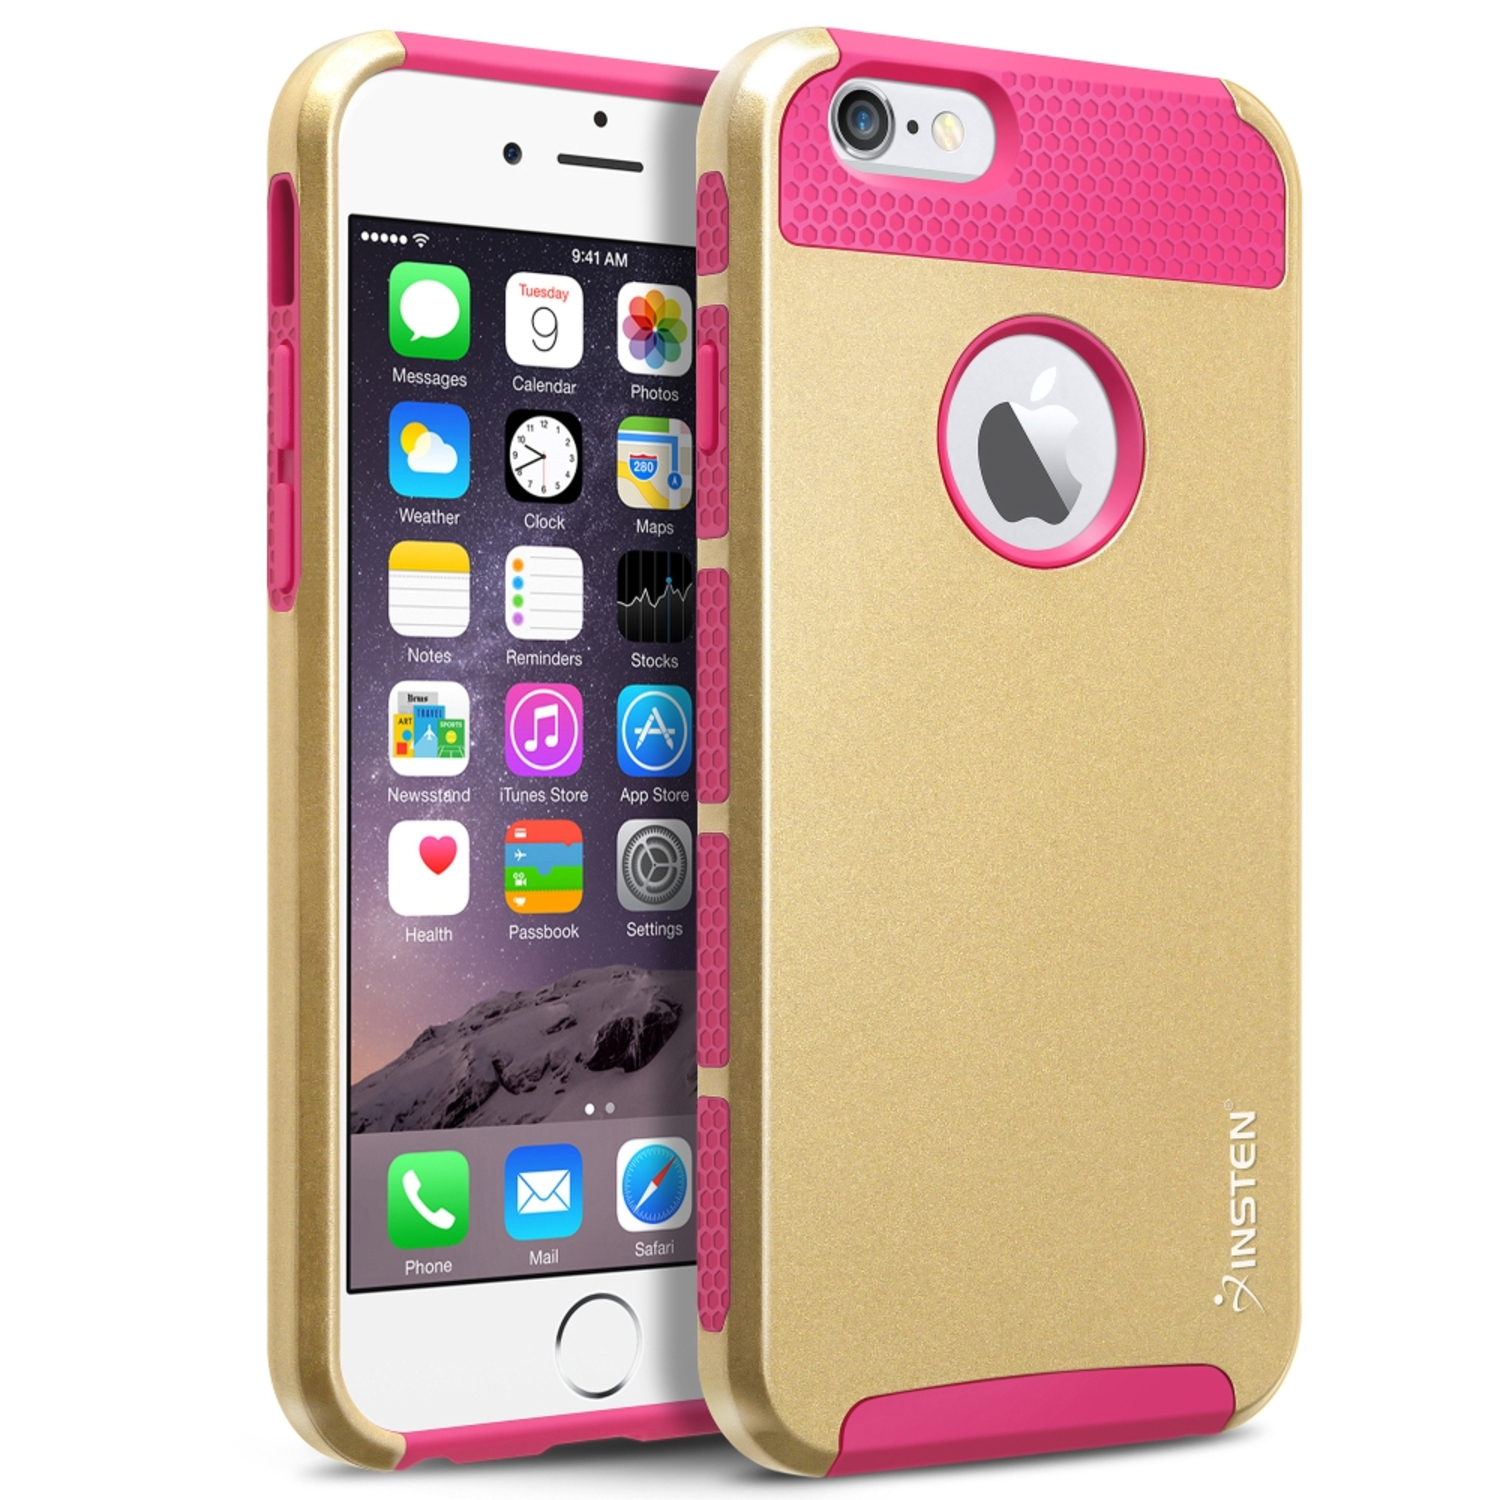 Insten Dual Layer Hybrid PC/Silicone Case Cover Compatible With Apple iPhone 6/6s, Gold/Hot Pink PartNumber: 05743861000P KsnValue: 8445256 MfgPartNumber: 1939408